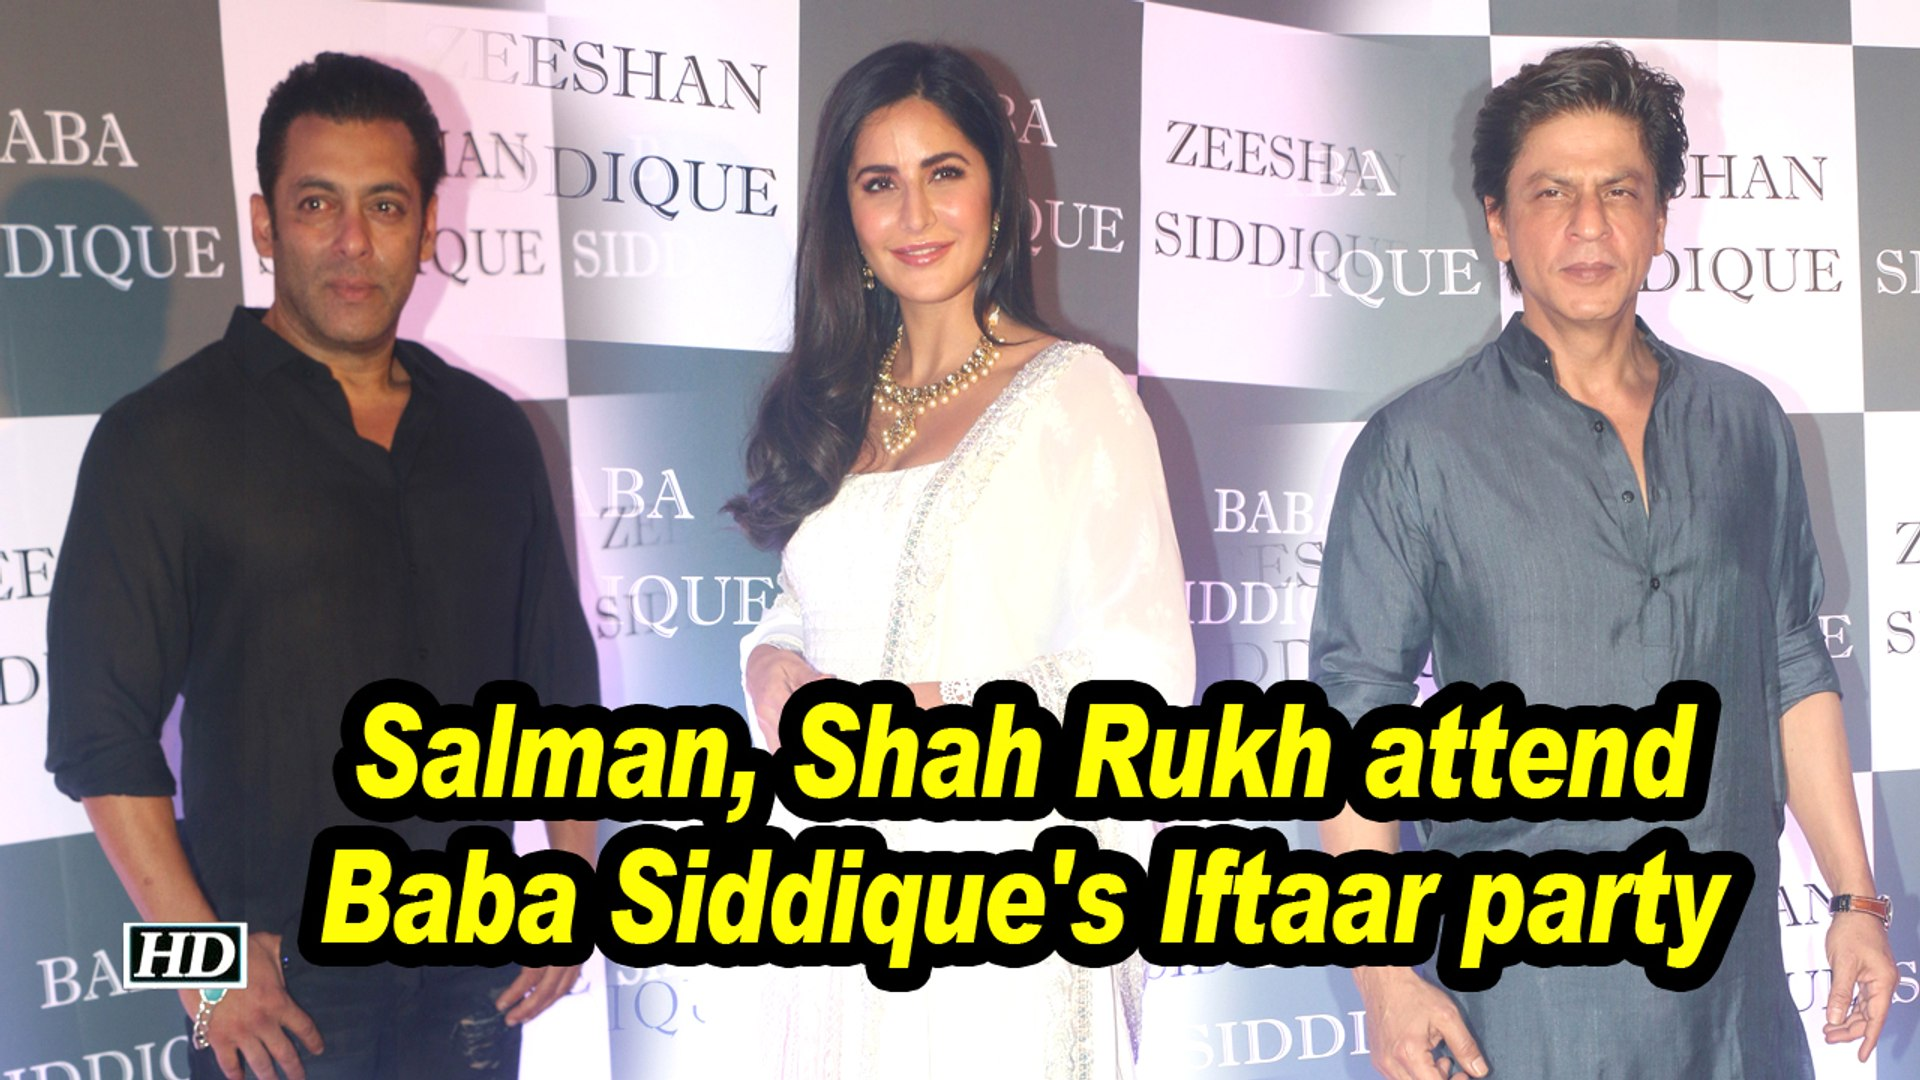 Salman, Shah Rukh attend Baba Siddique's Iftaar party